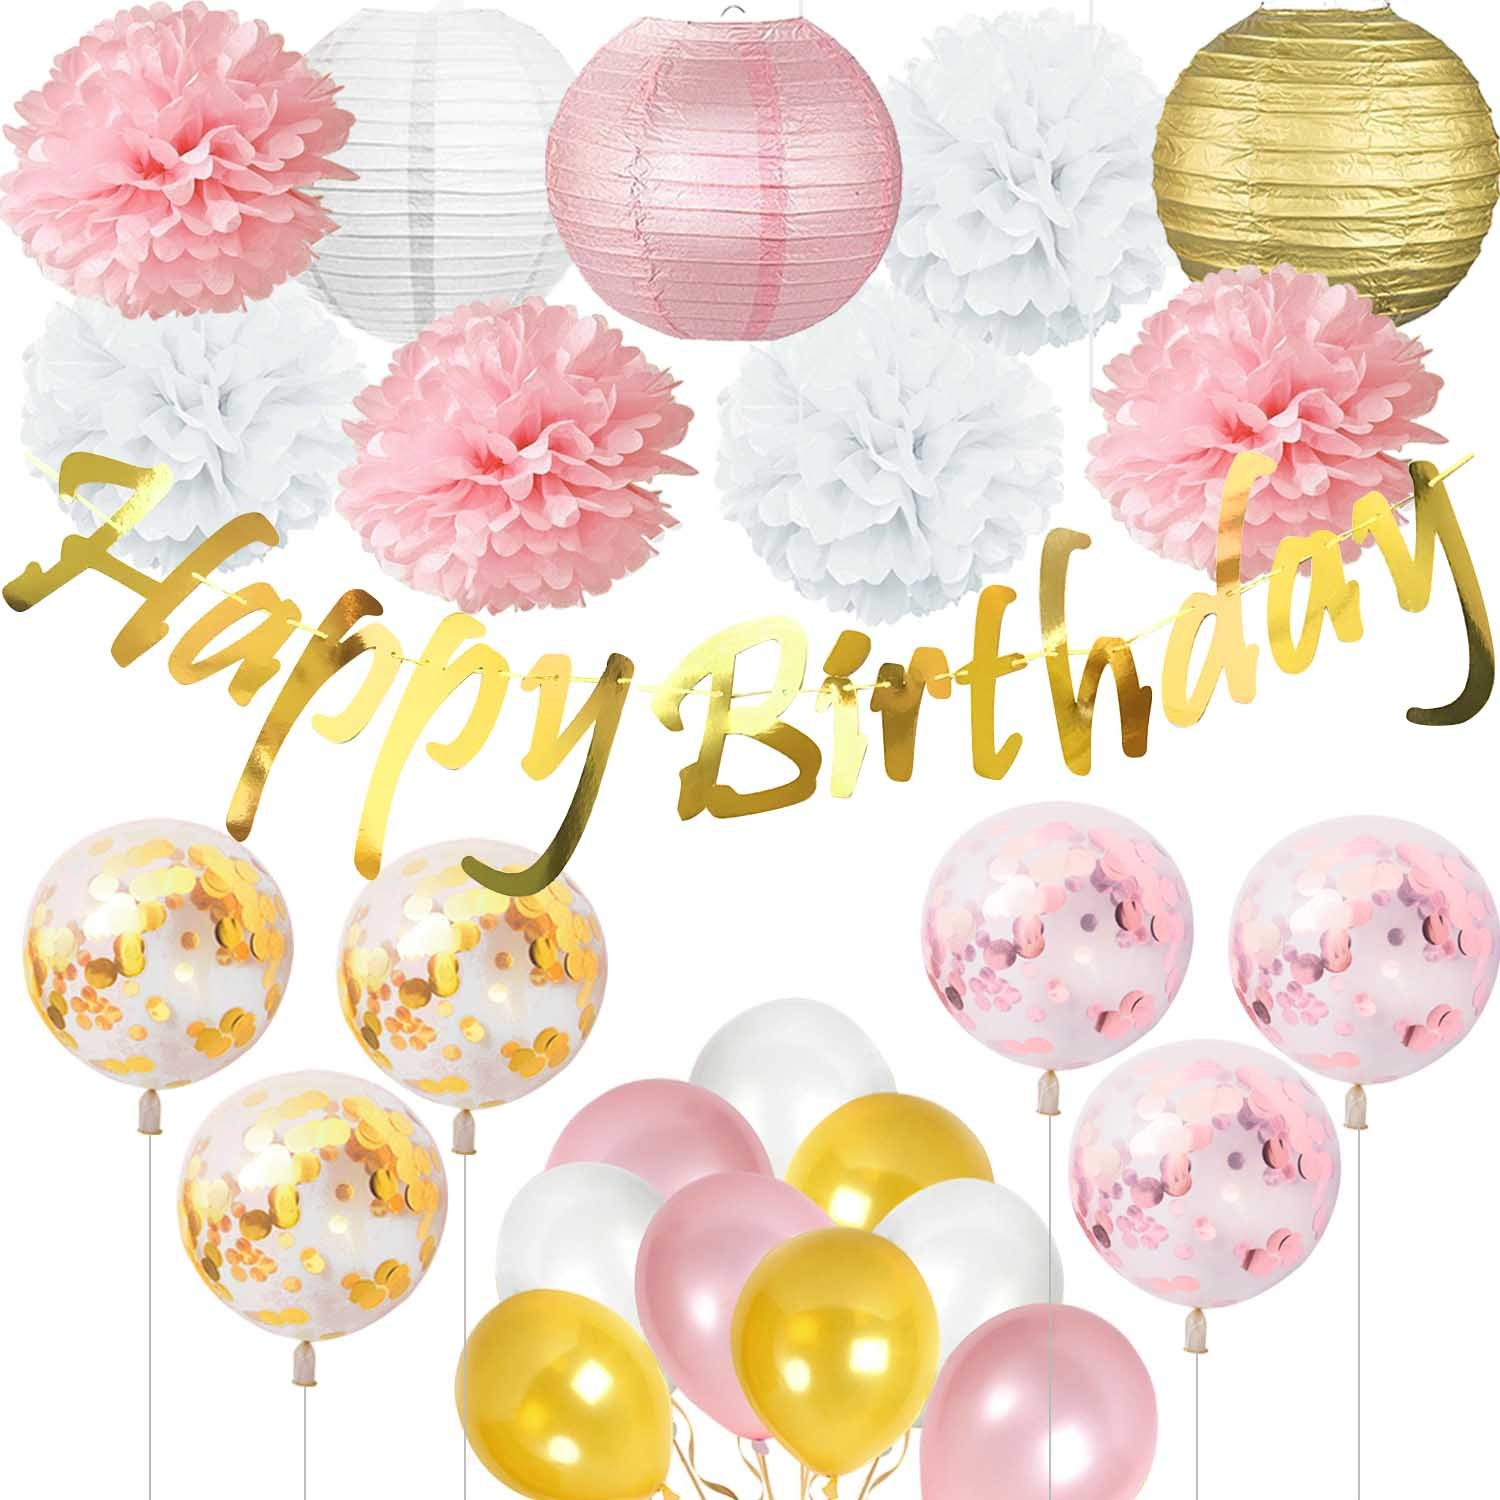 Cebelle Birthday Party Decorations, Party Supplies Glittering Golden Birthday Banner, Paper Lanterns, Tissue Flowers, Confetti Balloons, Gold Pink and White for Girls Bridal Shower, Home Decor